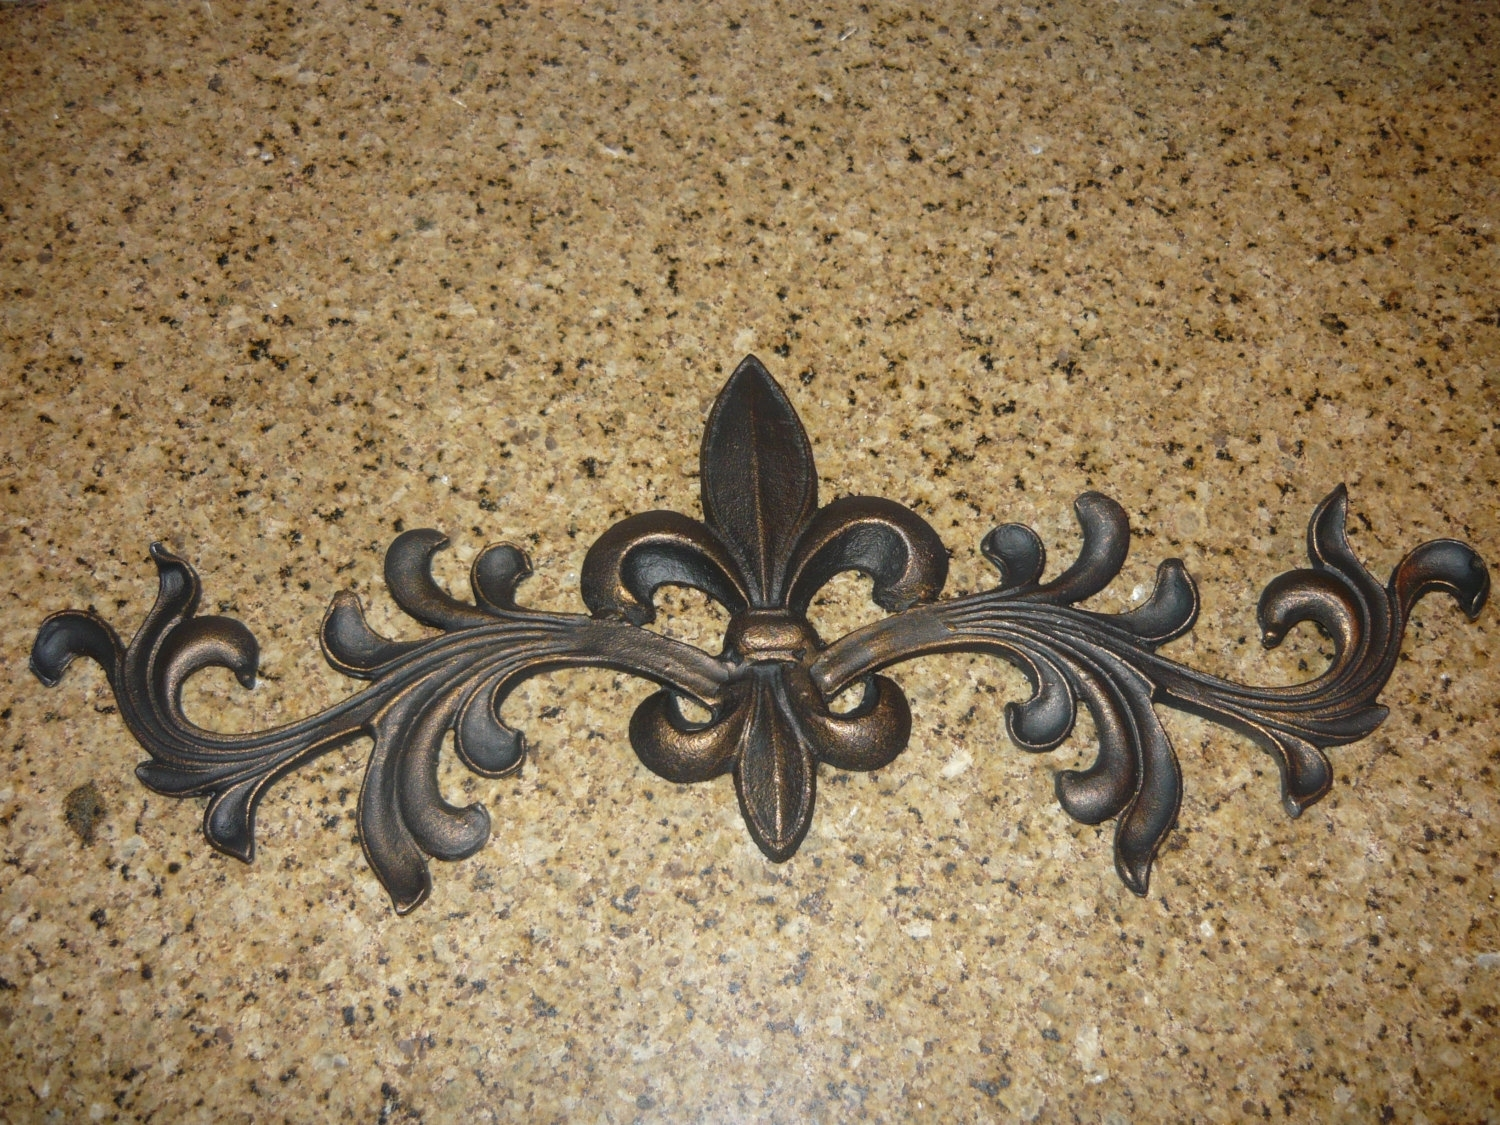 Amazing Fleur De Lis Metal Wall Decor Modern Home Lakaysports Com Intended For Latest Fleur De Lis Wall Art (View 6 of 20)